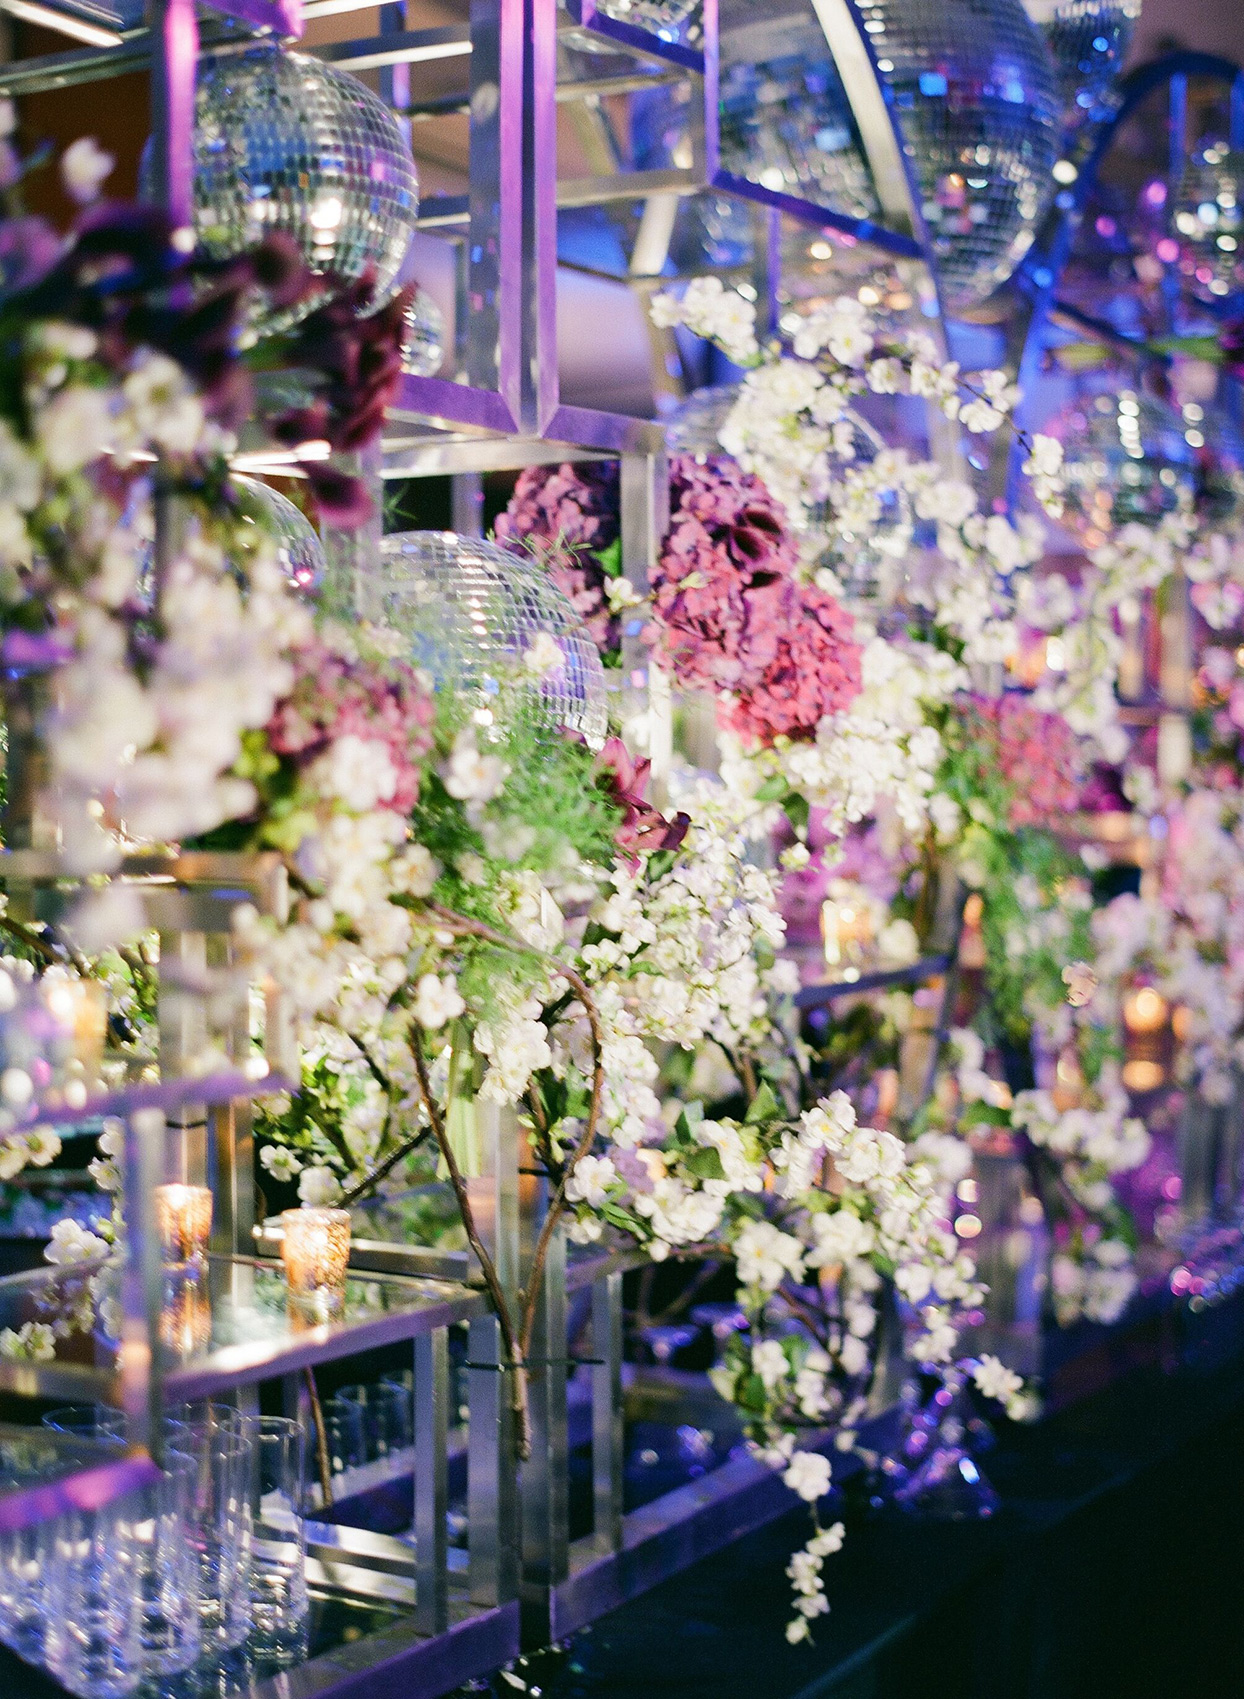 wedding bar lit with purple lights and decorated with white flowers